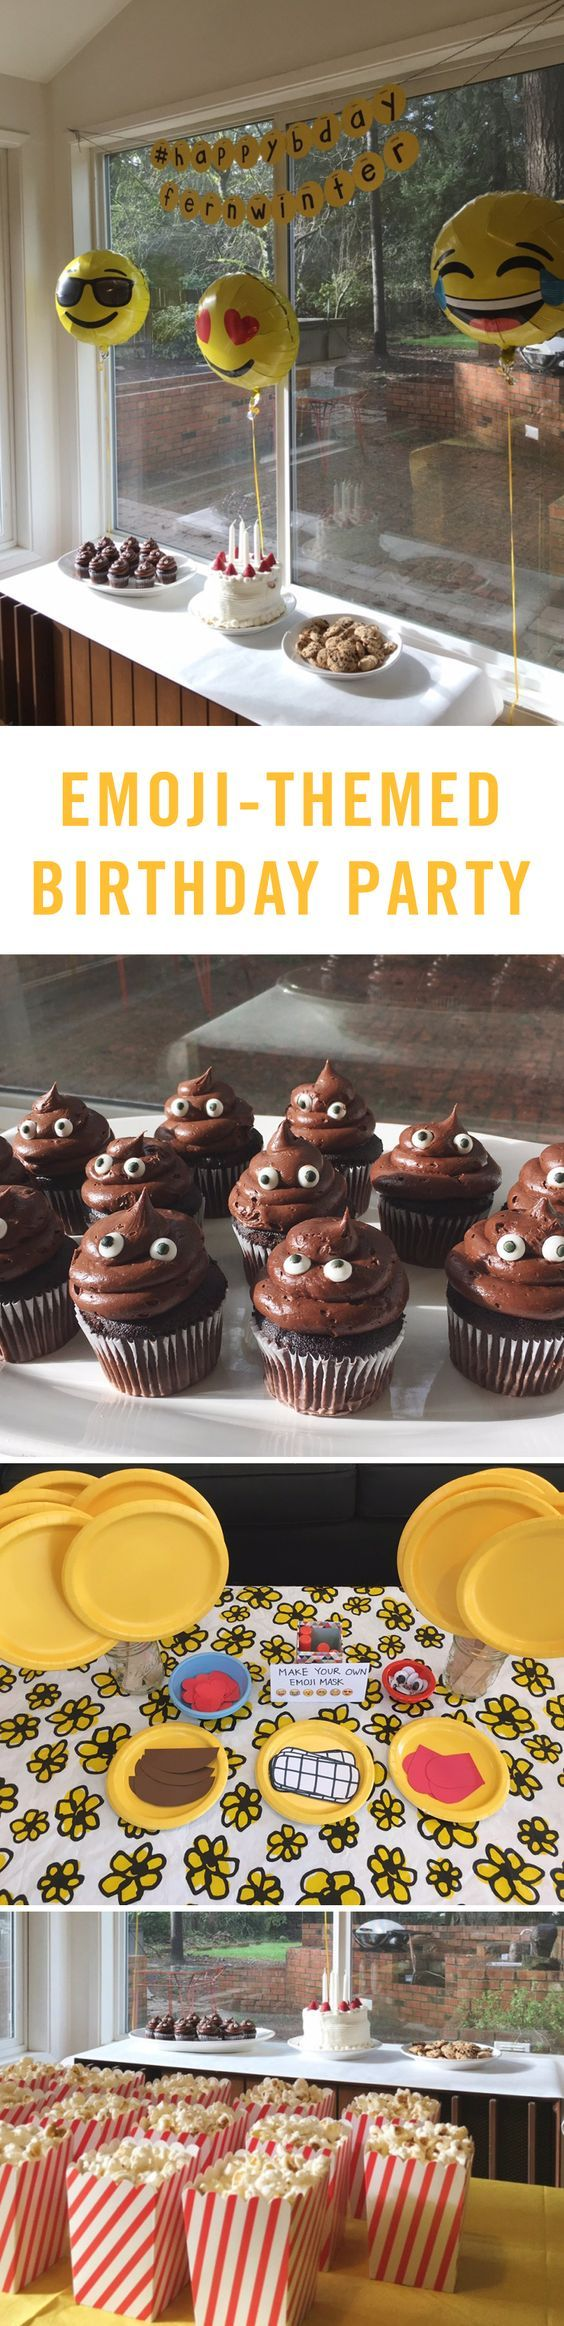 Be on trend with the ultimate emoji-themed birthday party! From emoji balloons to emoji cupcakes this party has it all!